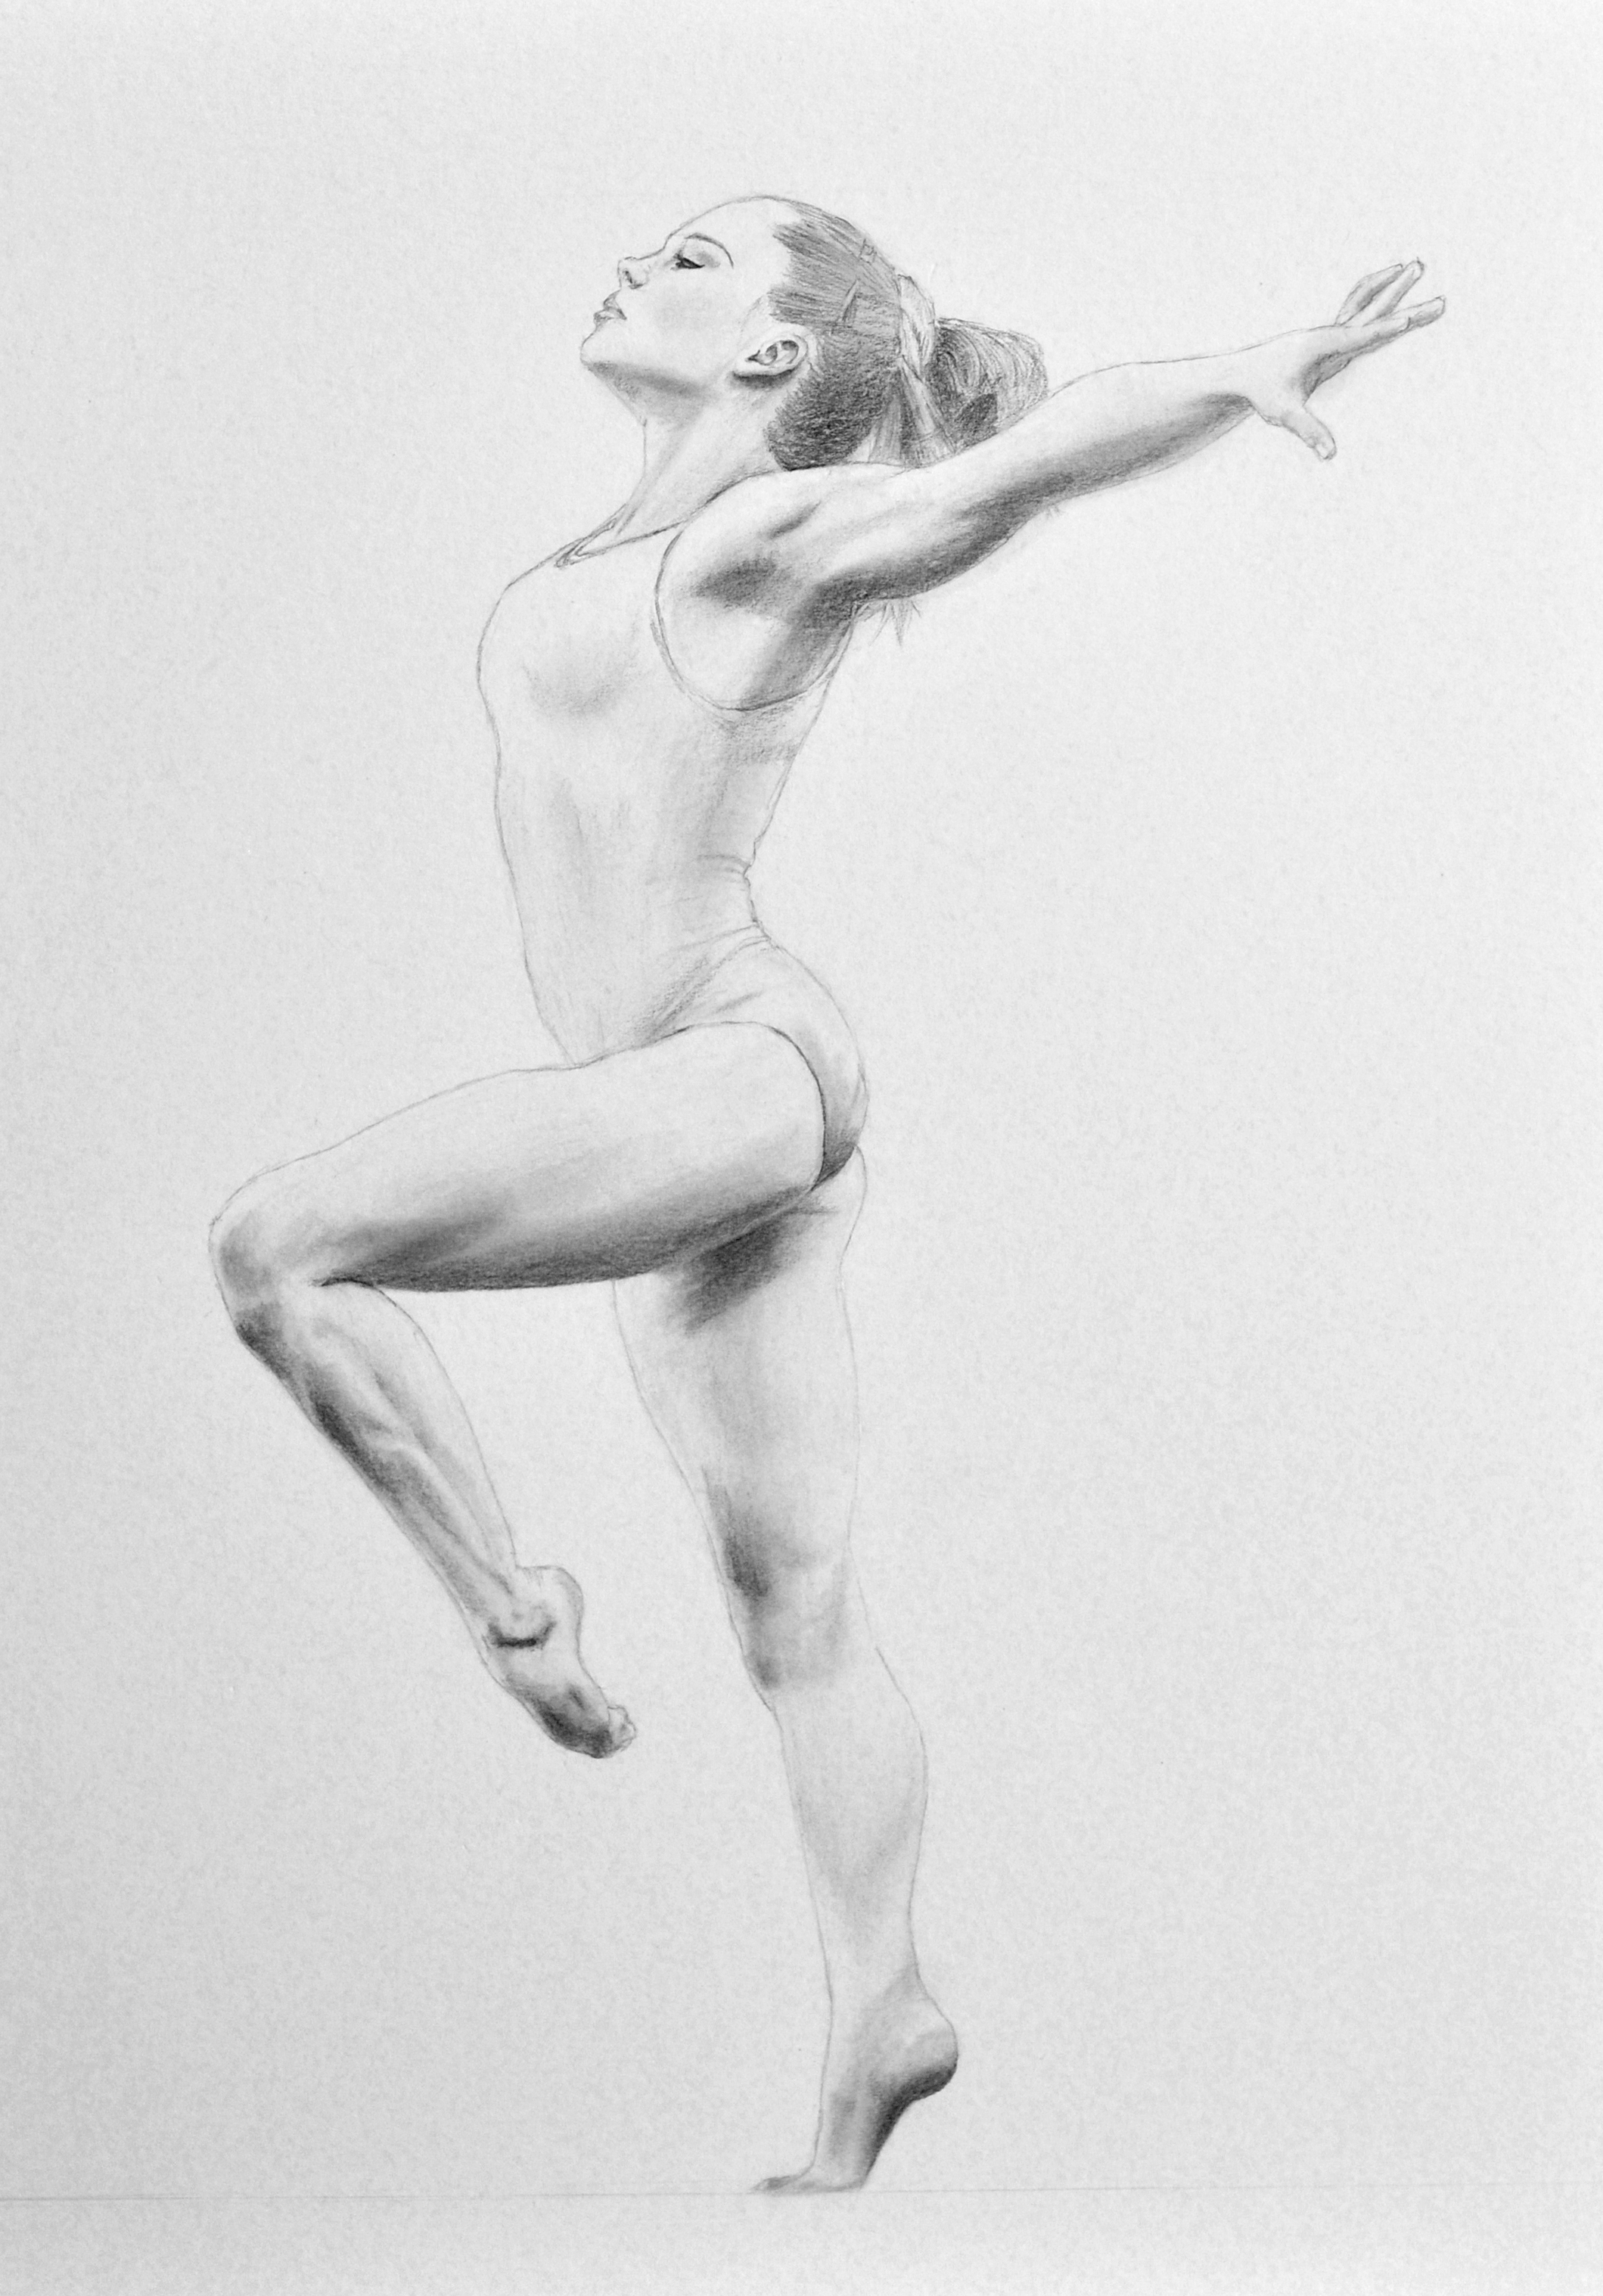 how to draw a person doing gymnastics how to draw a gymnast doing the splits thaipolicepluscom person draw how to a doing gymnastics